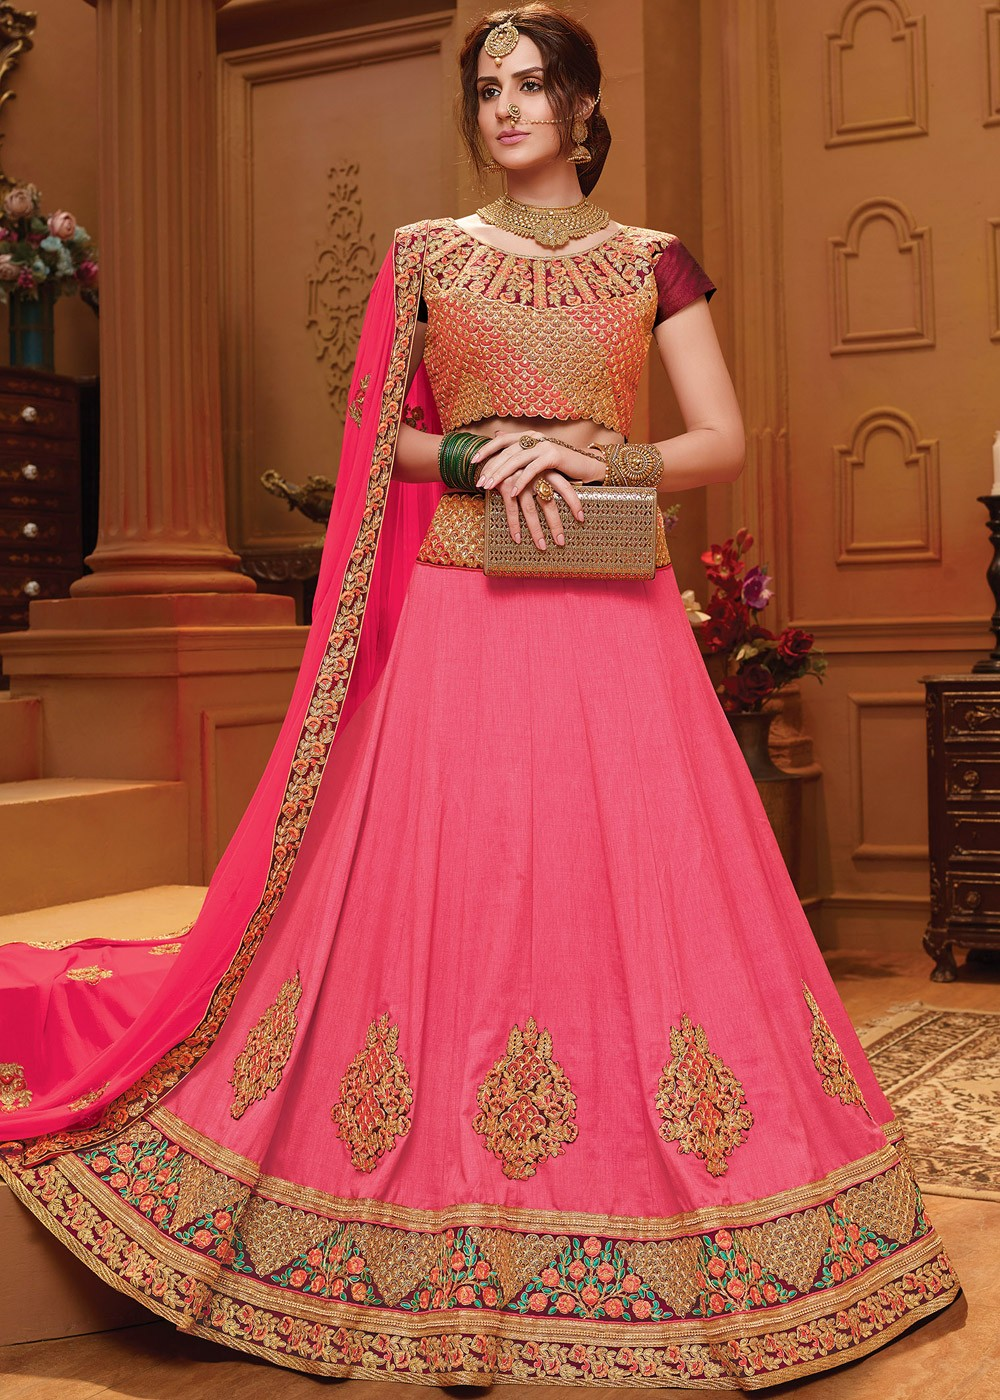 cffd81d10a Pink Art Silk Lehenga Choli With Dupatta. Tap to expand